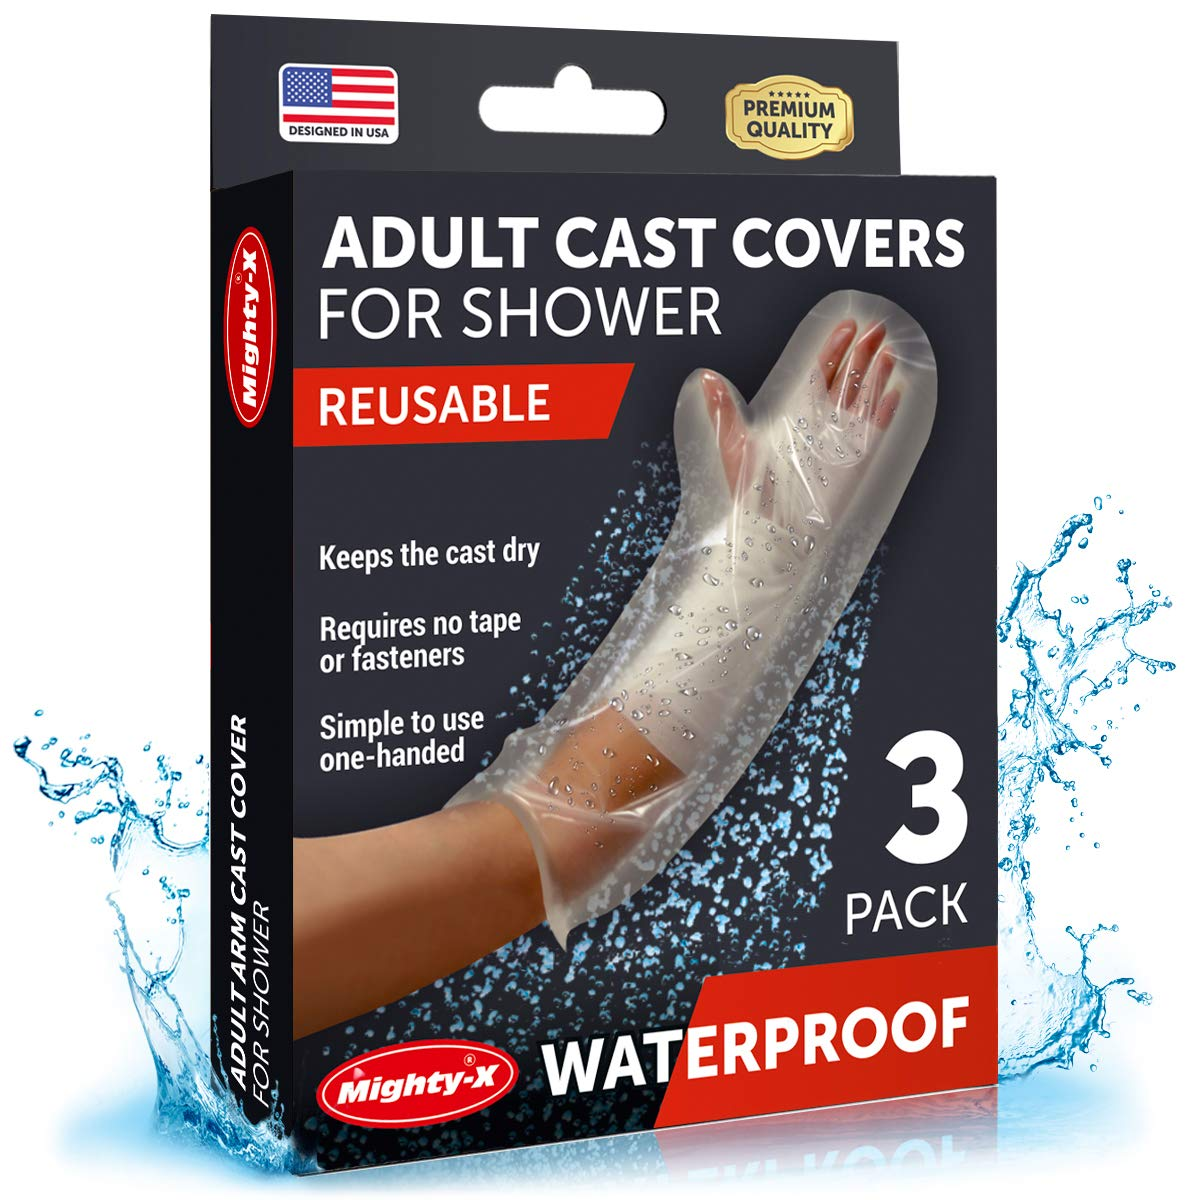 【2020 Upgraded】Waterproof Cast Cover Arm - 100% Reusable - Watertight Seal - Adult Cast Covers for Shower Arm, Wrist & Hand - 3 Pack: Industrial & Scientific